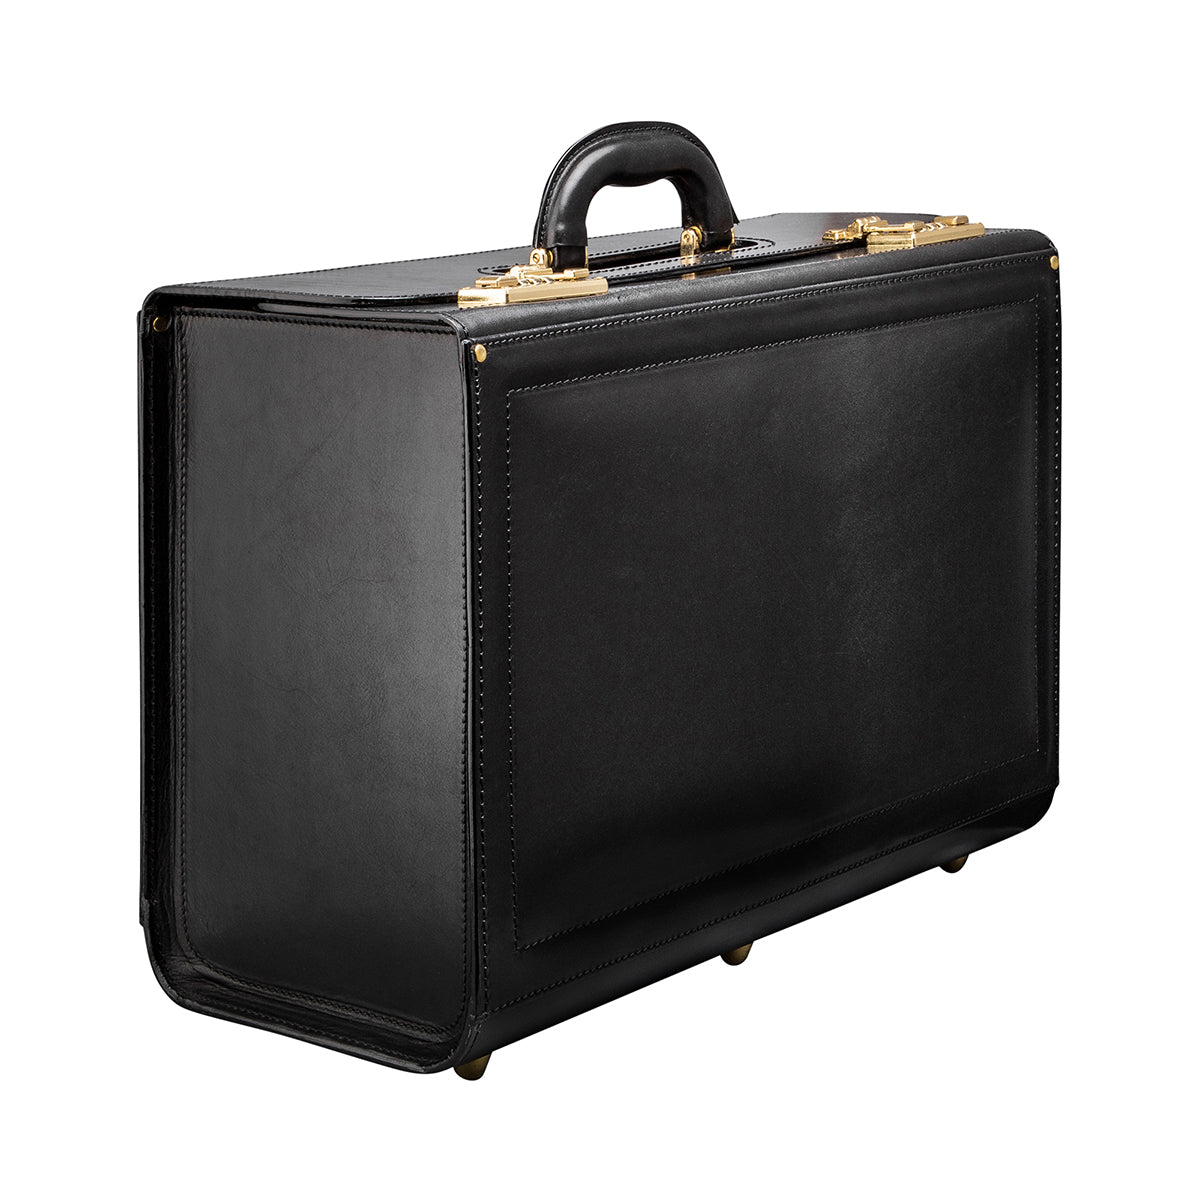 Image 2 of the 'Varese' Black Veg-Tanned Briefcase